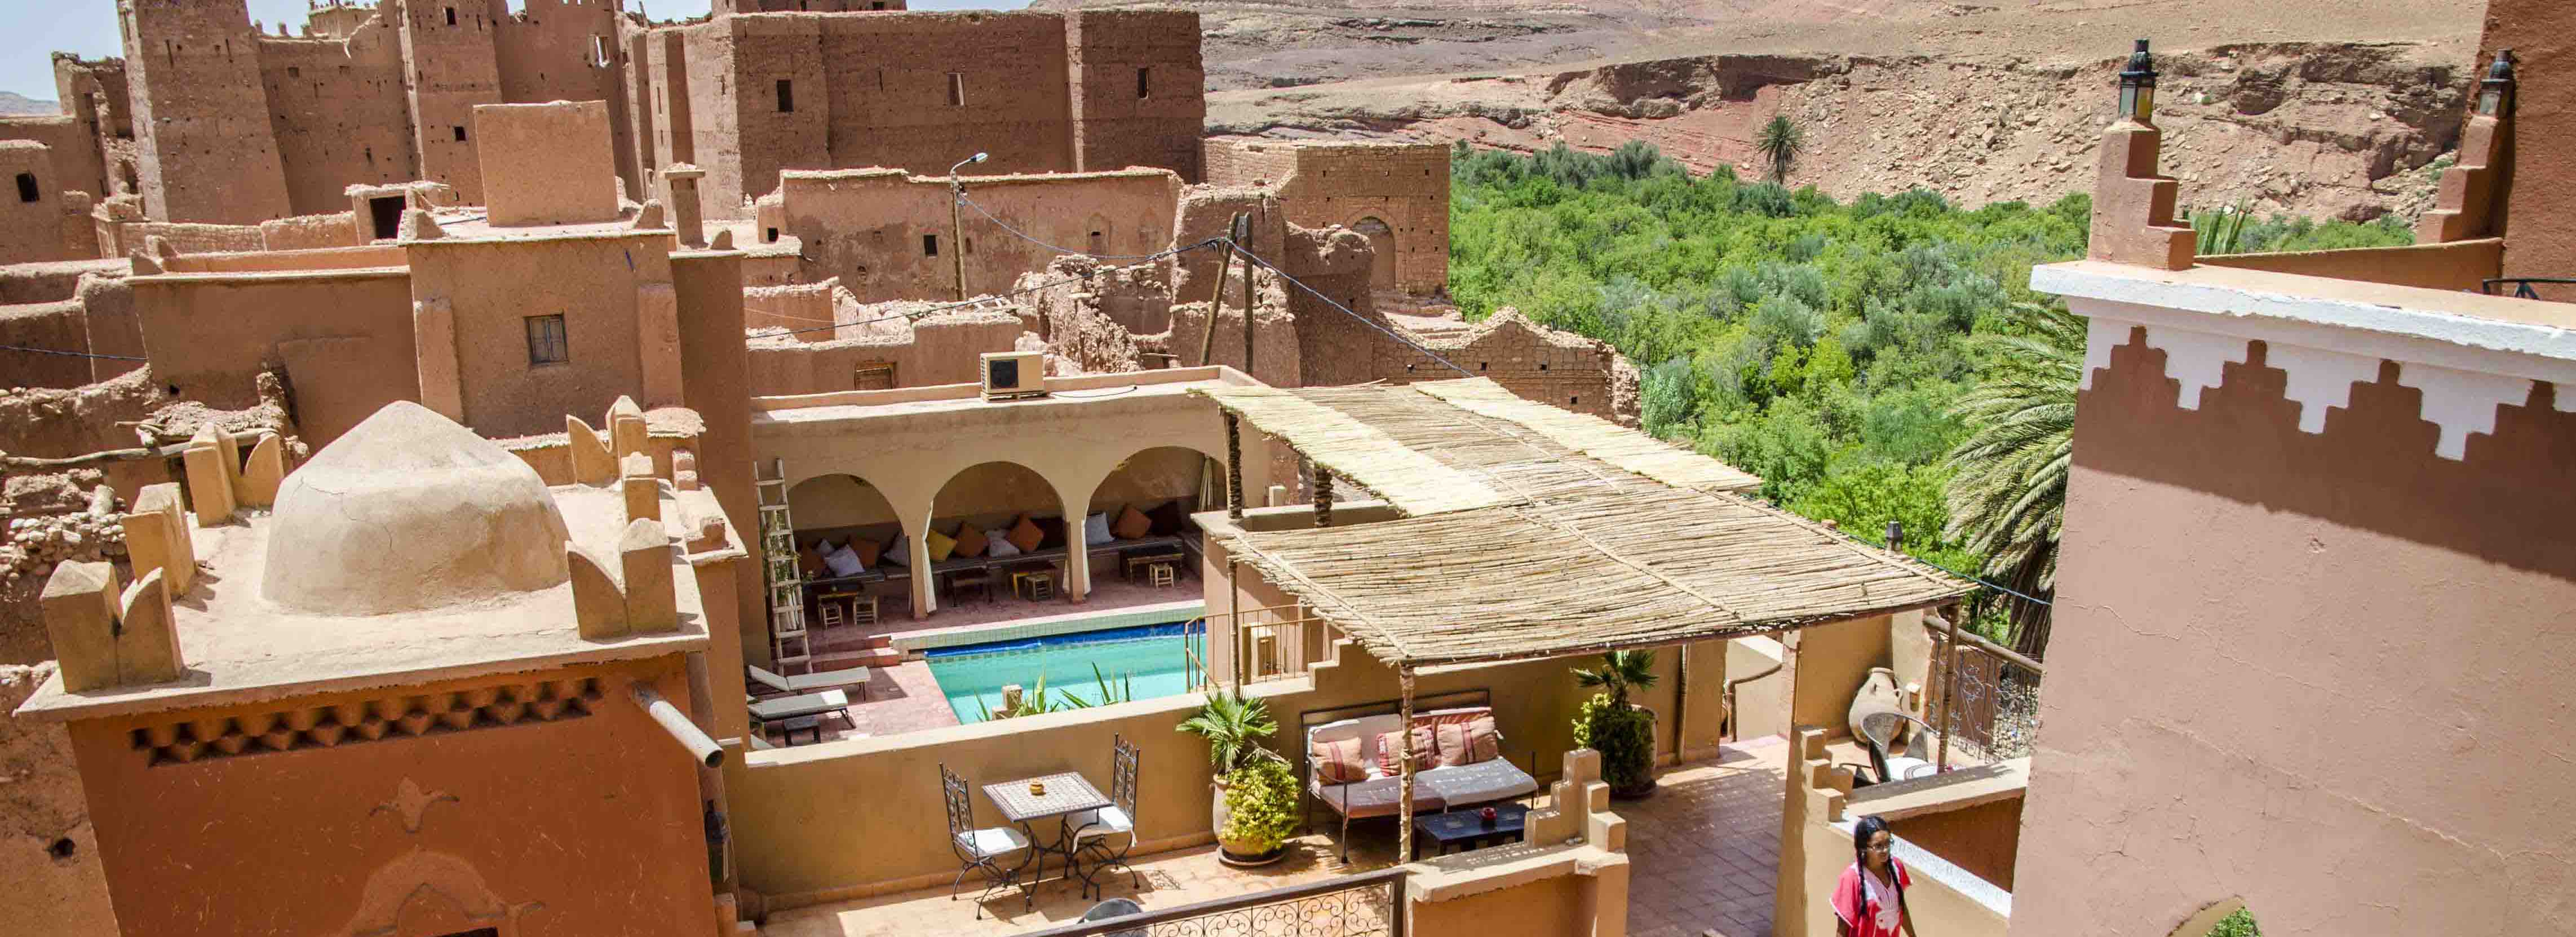 kasbah the best place to take a rest in gorge todgua